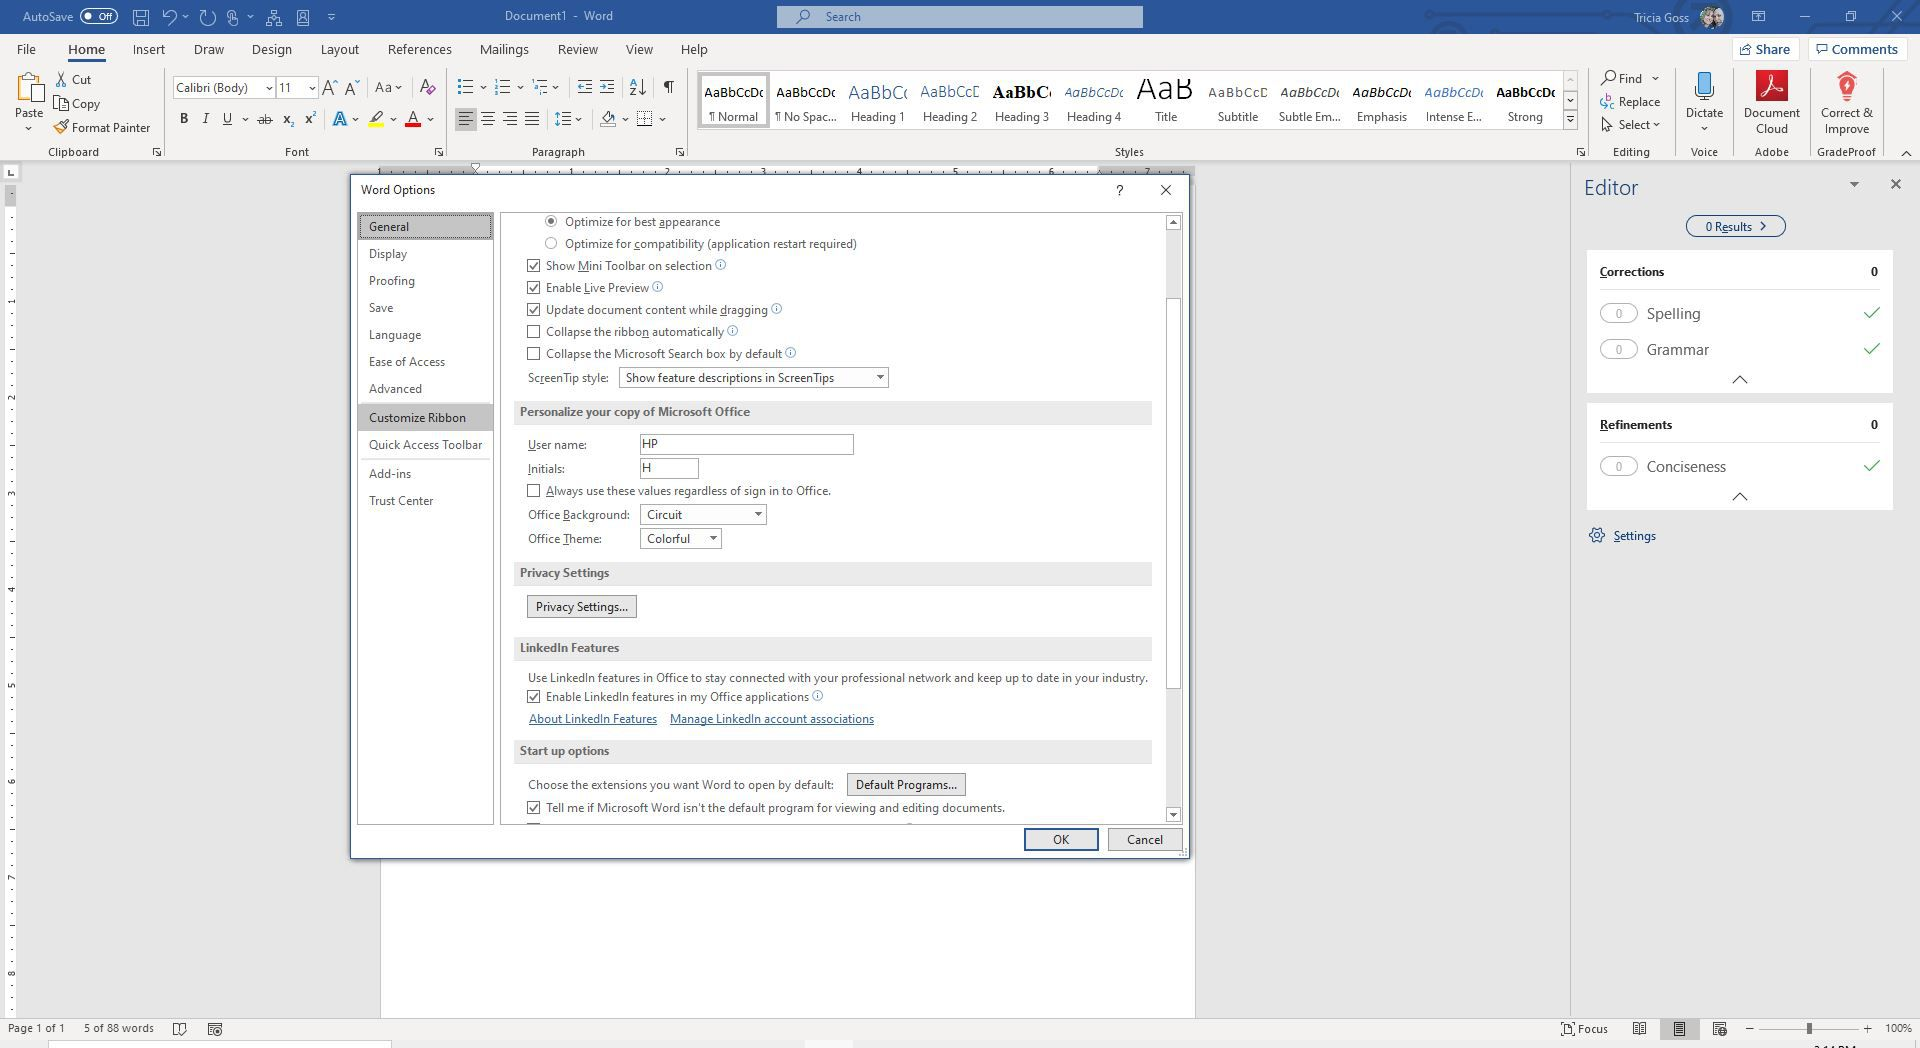 Screenshot of Customize Ribbon in Word Options